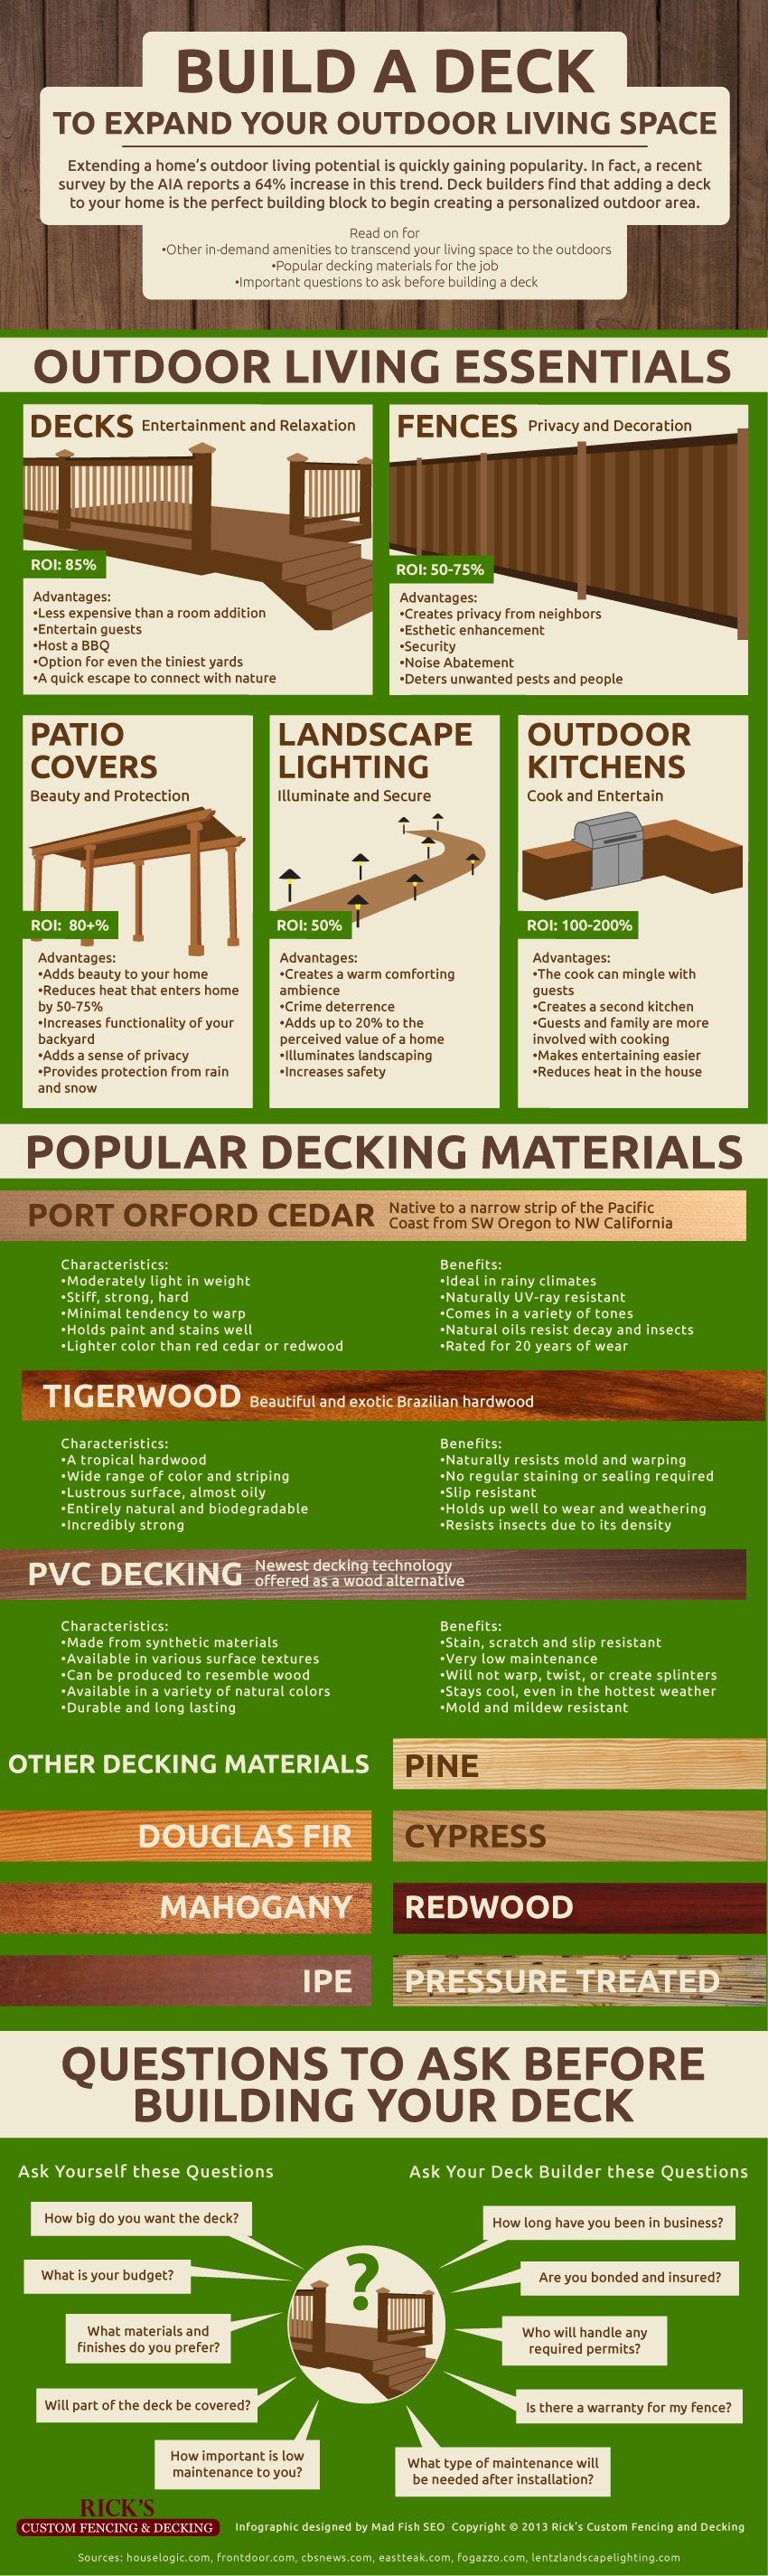 Build a Deck to Expand Your Outdoor Living Space